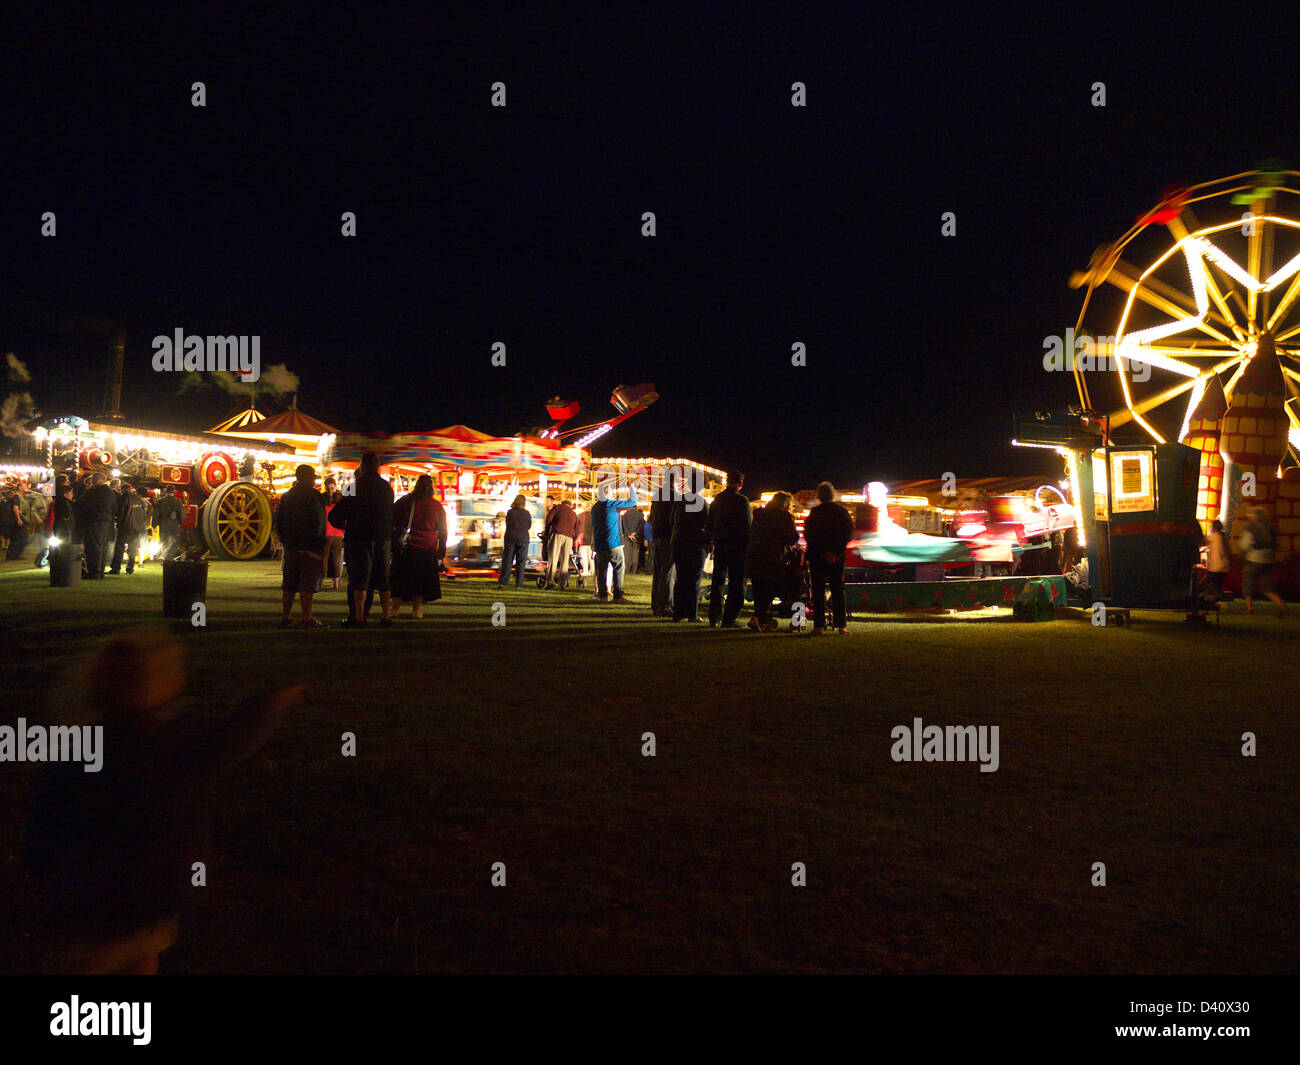 The old time Steam fair at Lincolnshire steam and vintage rally seen at night - Stock Image